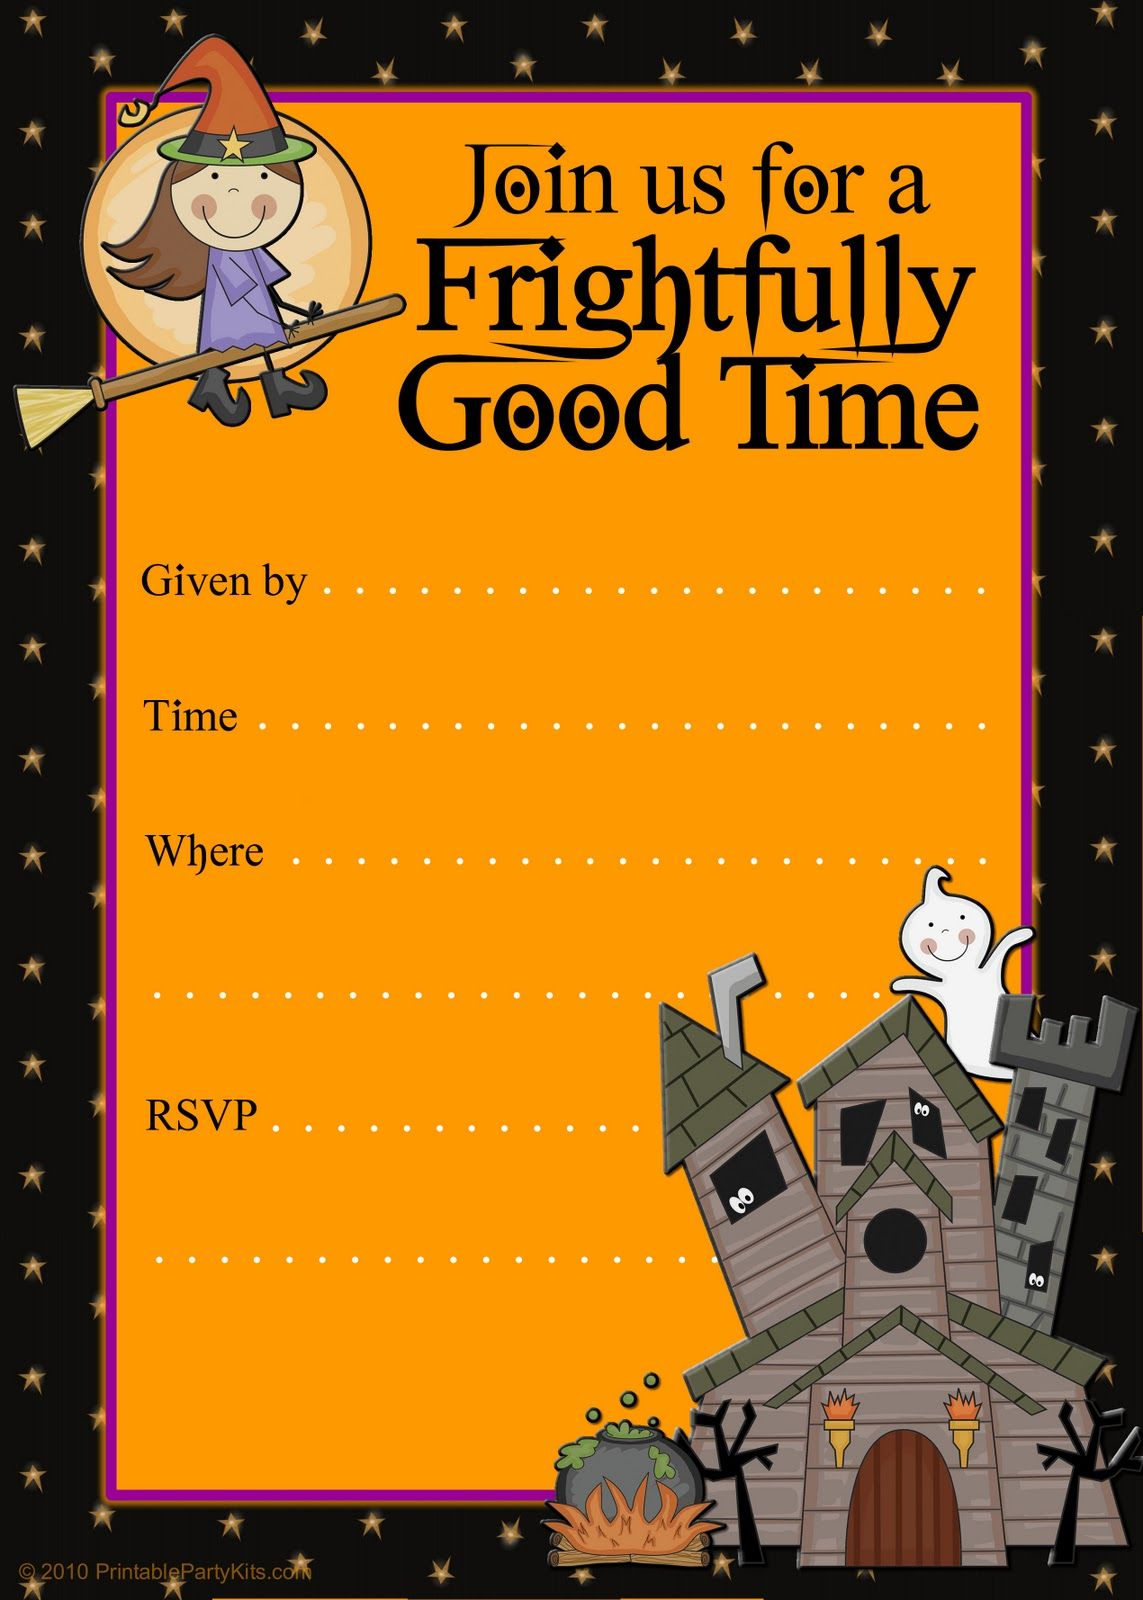 Free Halloween Flyer Invitations Printable Food Pinterest - Free halloween flyer templates